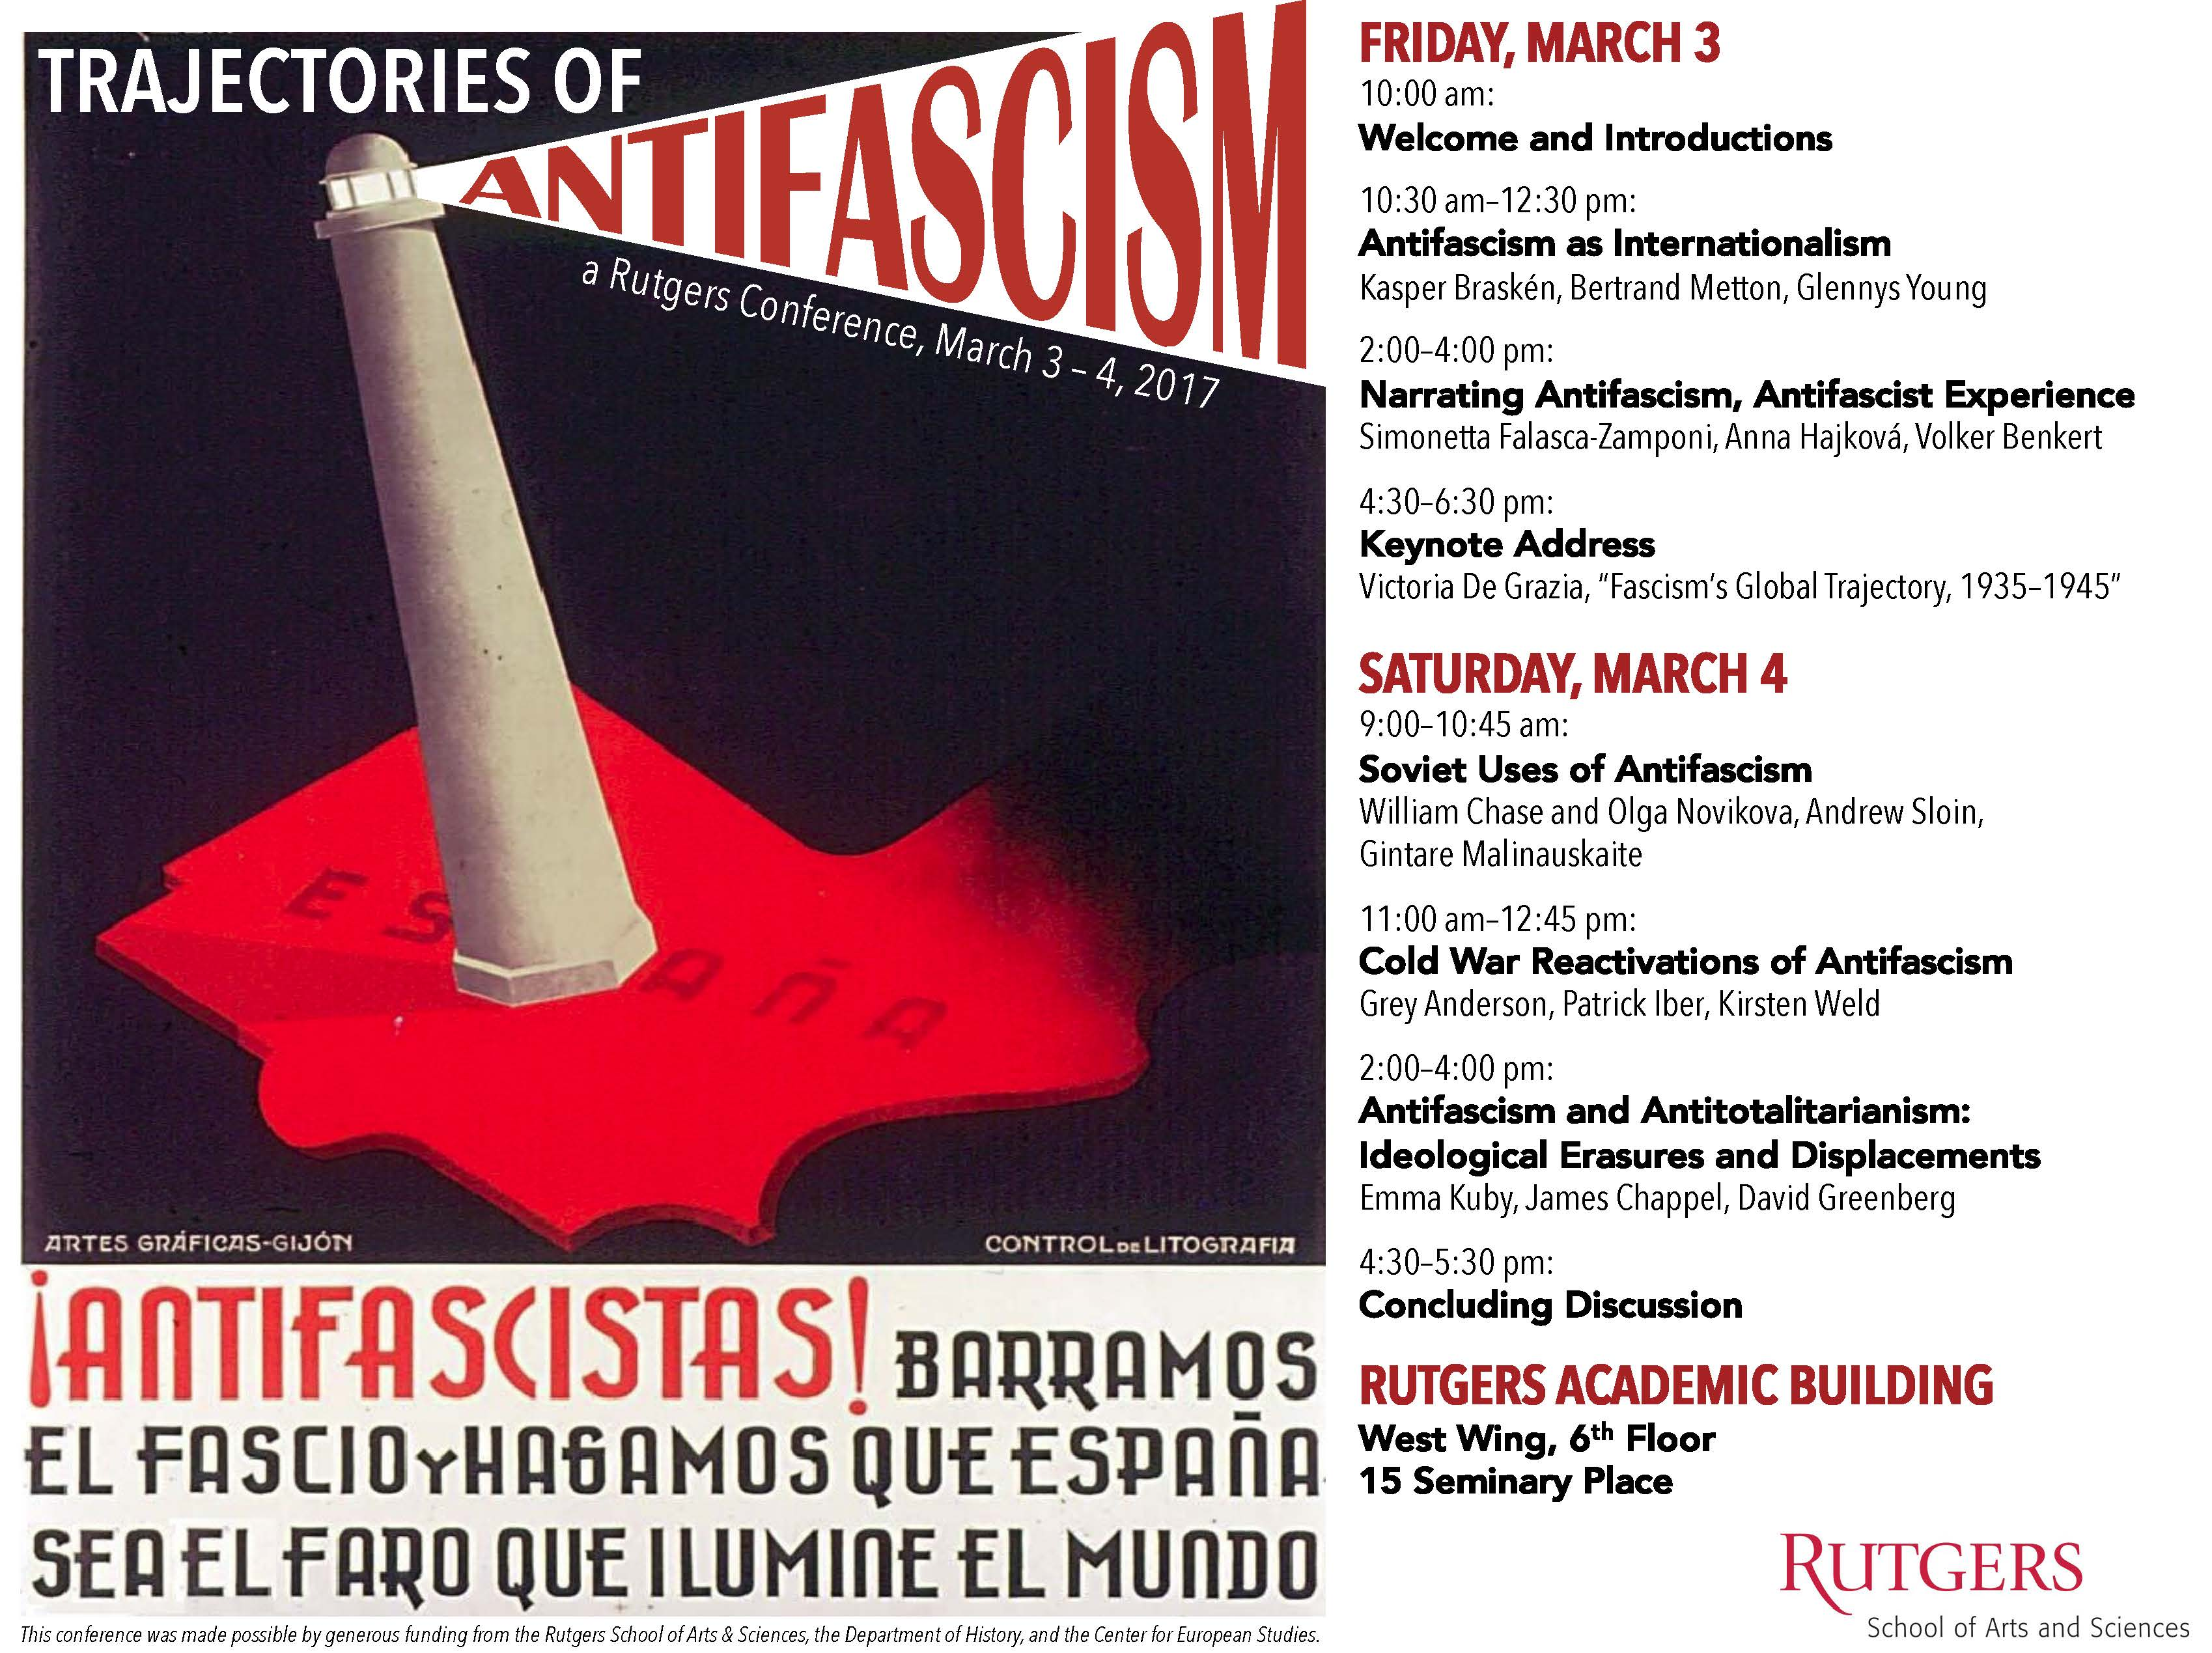 Antifascism conference poster